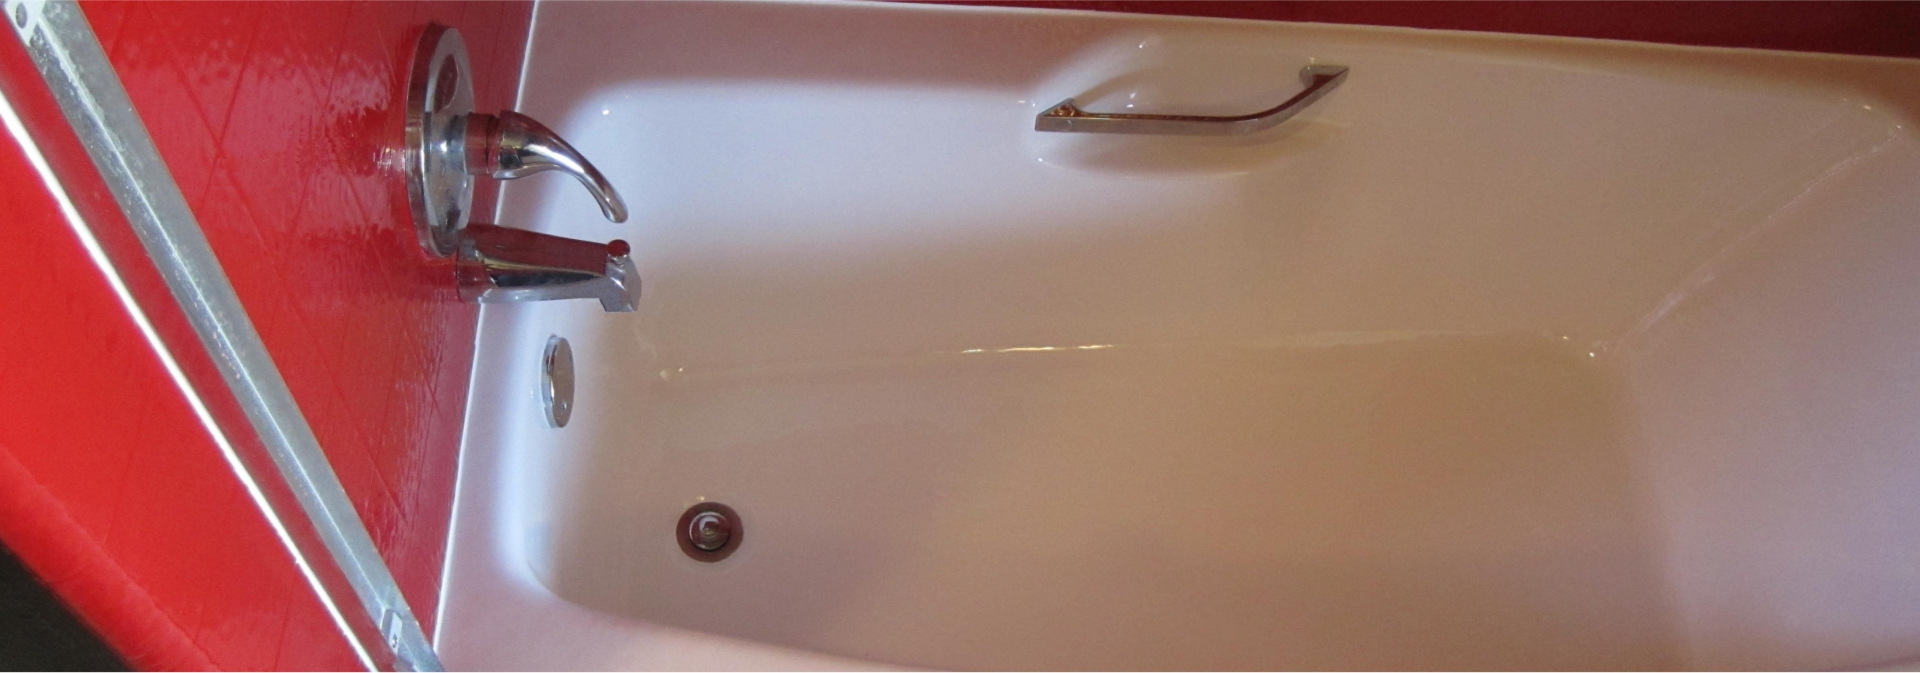 Bathtub Reglazing Los Angeles The Professional Reglazing Company